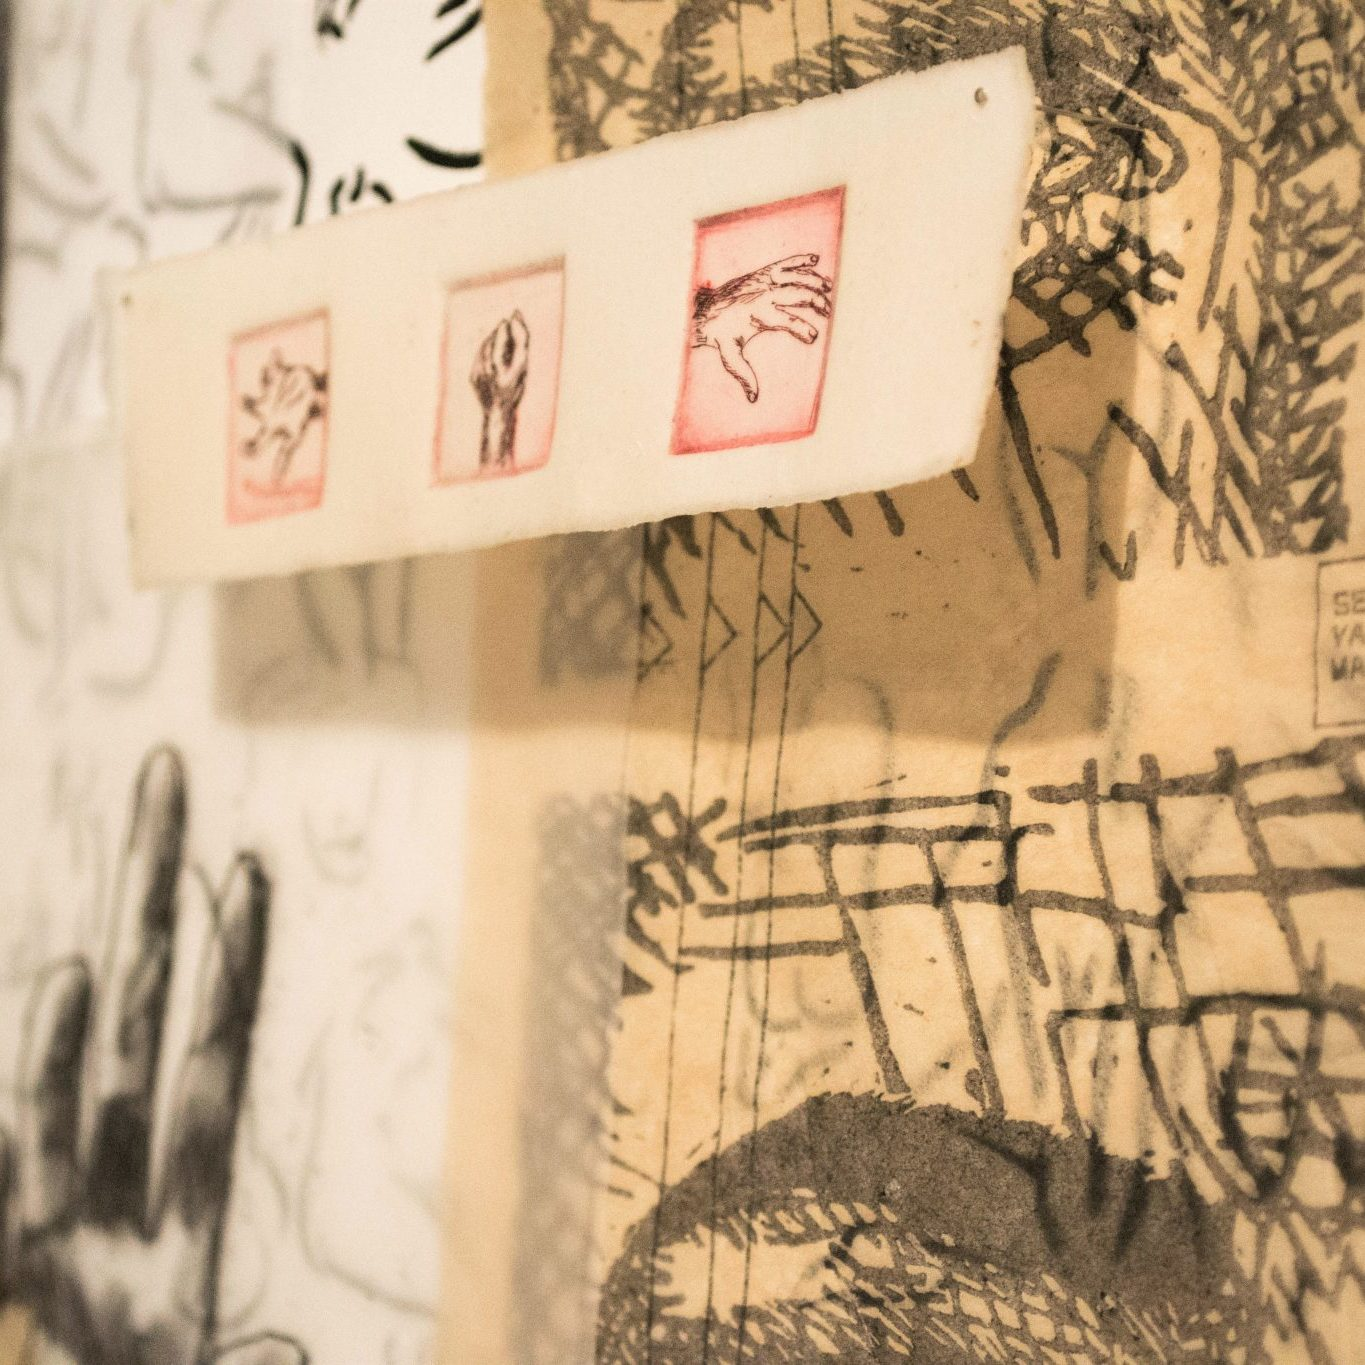 Pieces of paper with black and red pen sketches of bodies and body parts are layered on a wall using small pins